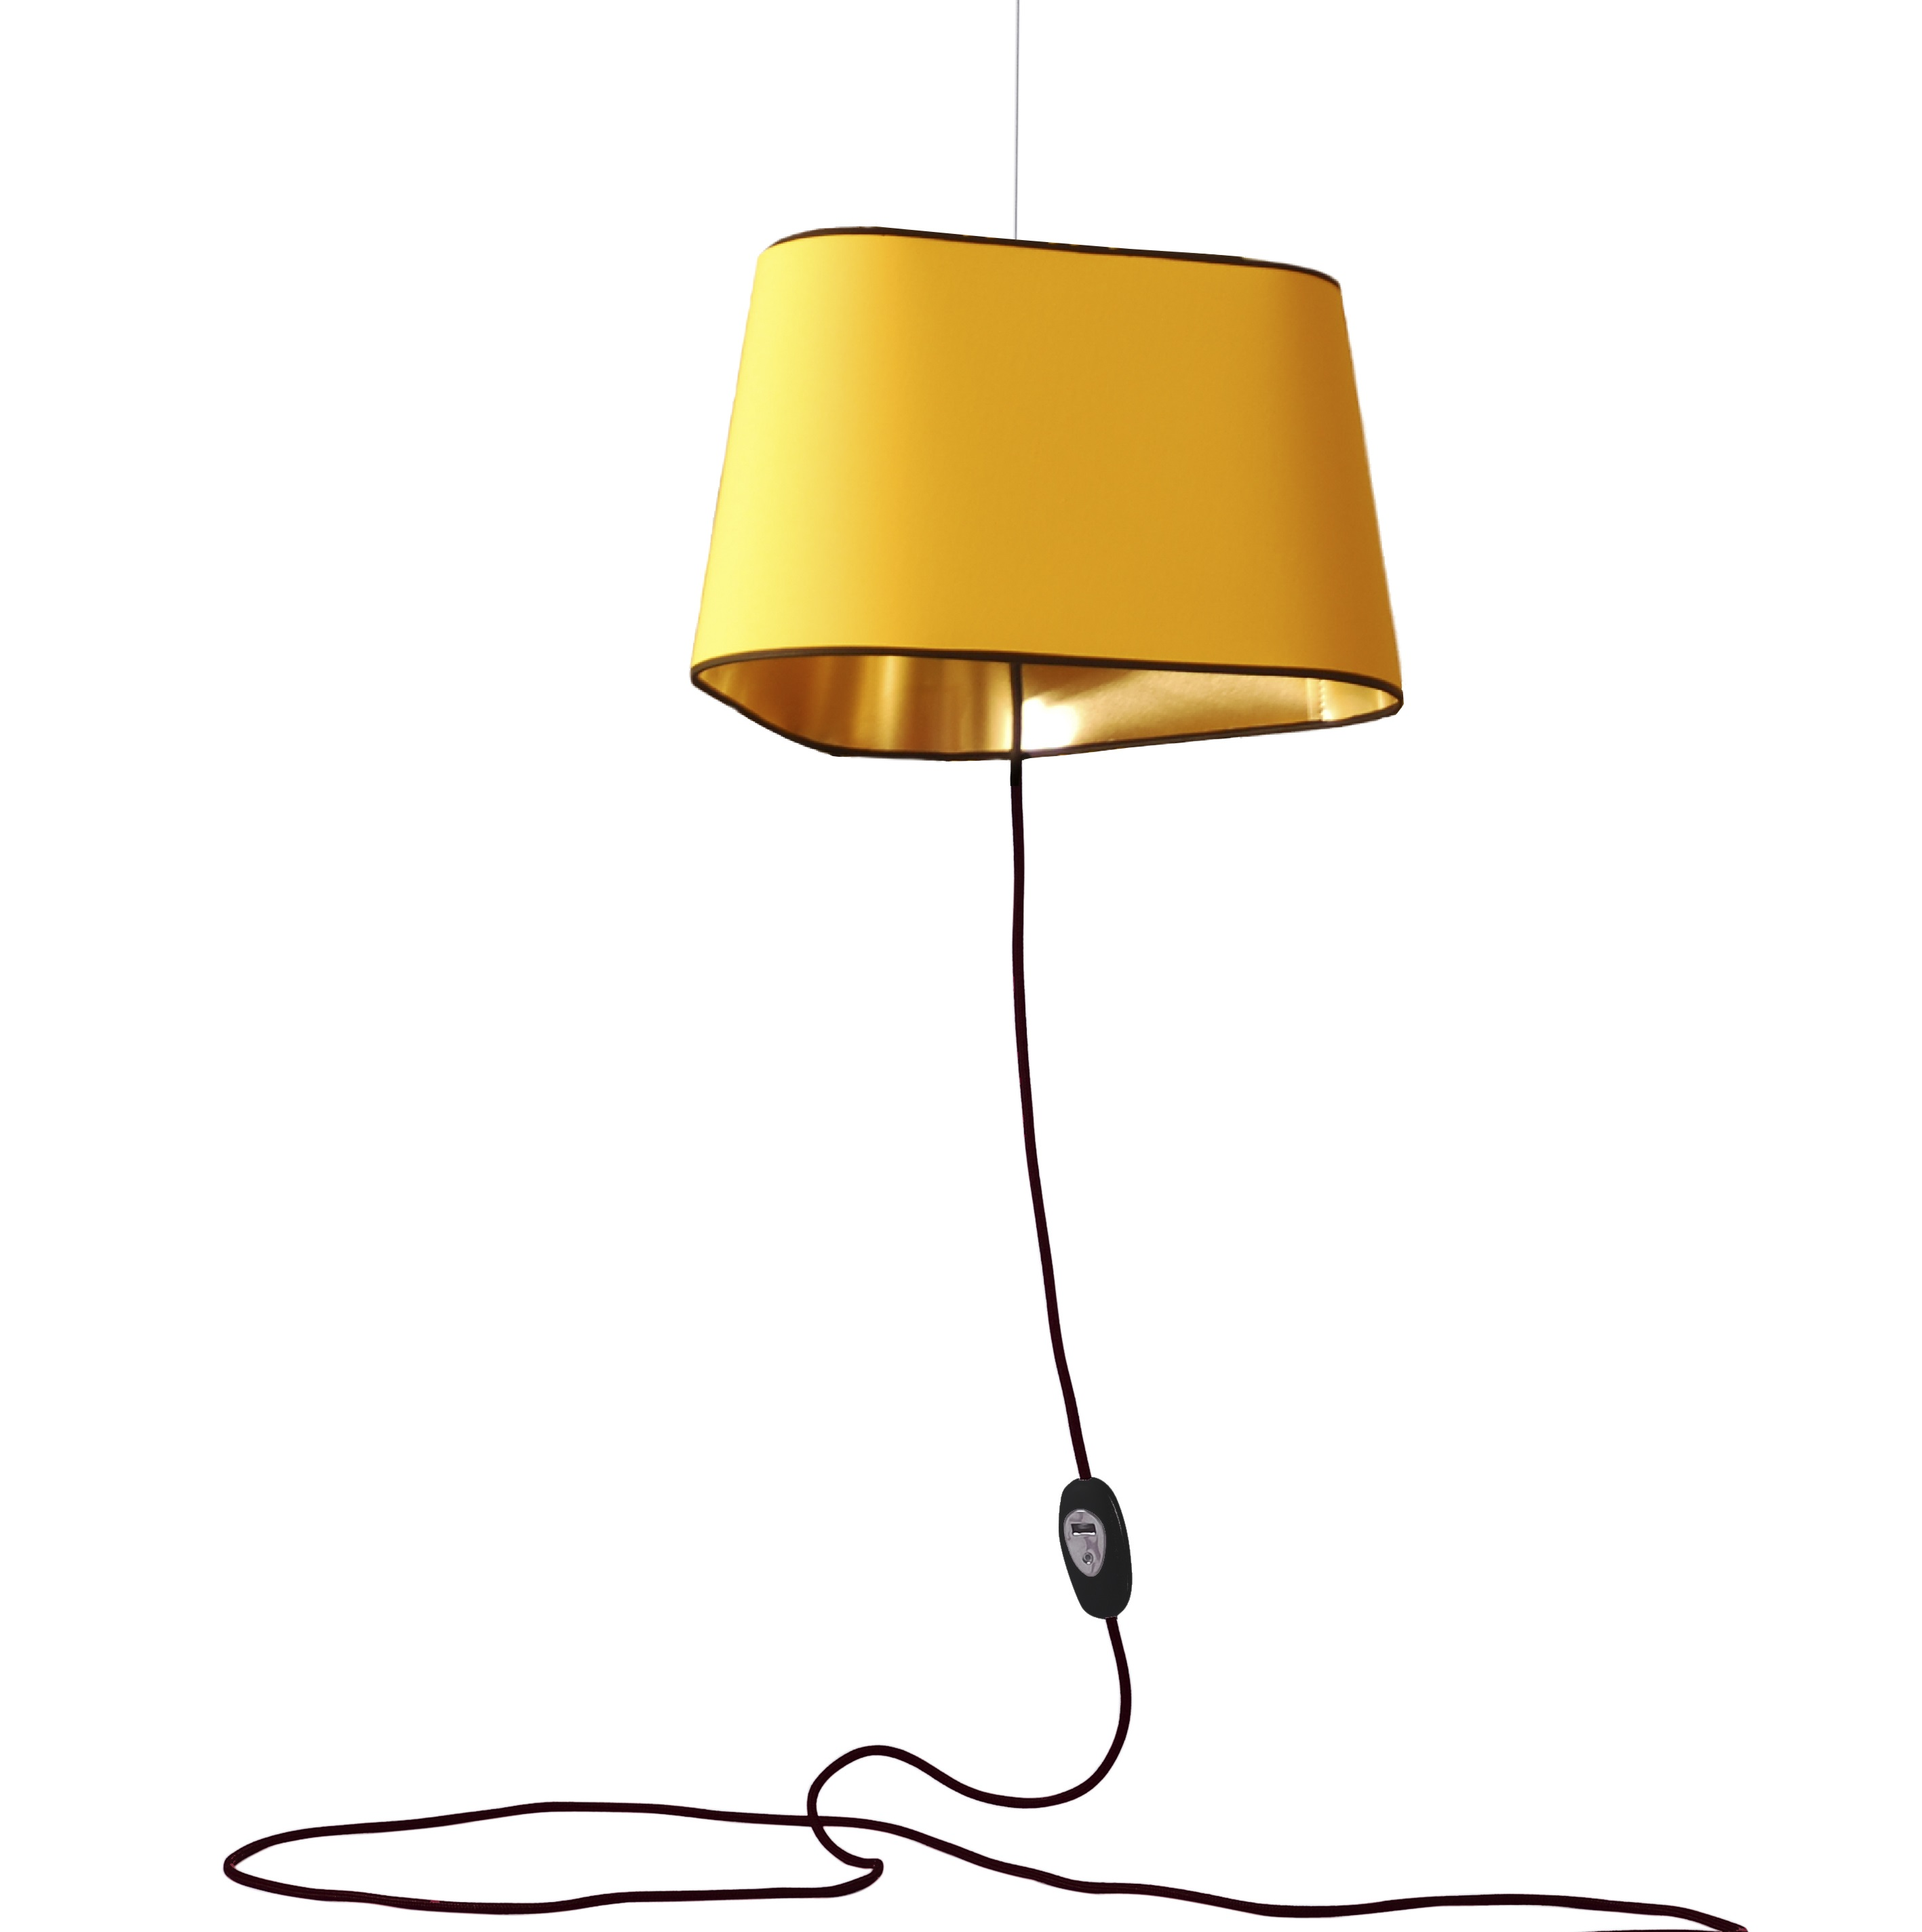 Suspension Luminaire Grand Diametre Suspension Nomade Grand Nuage Jaune Or Ø43cm